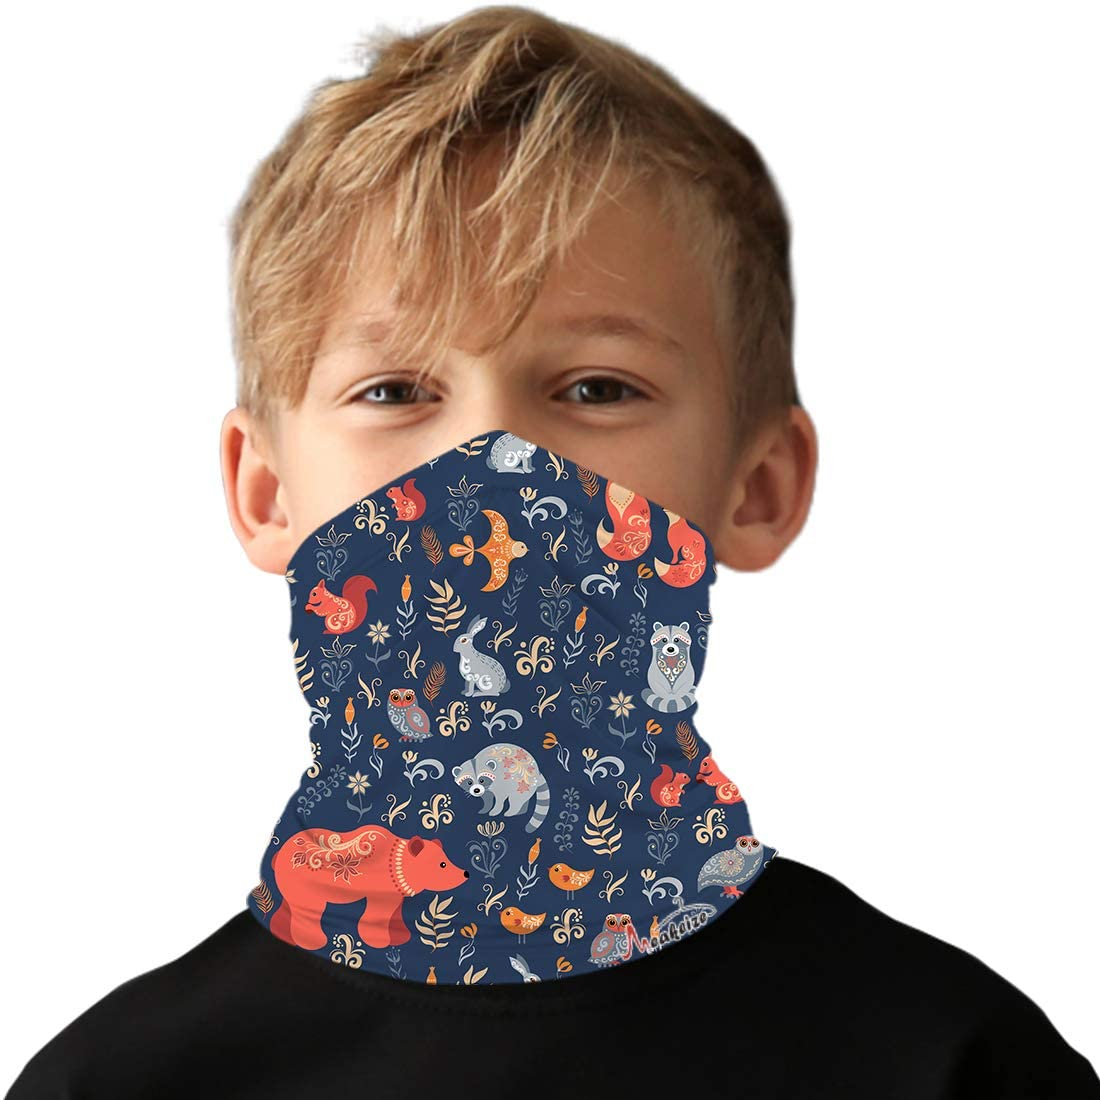 meakeize Kids Full-Coverage Tube Face Mask Bandanas UV Protection Neck Gaiter Headband, UPF 50+ Fabric